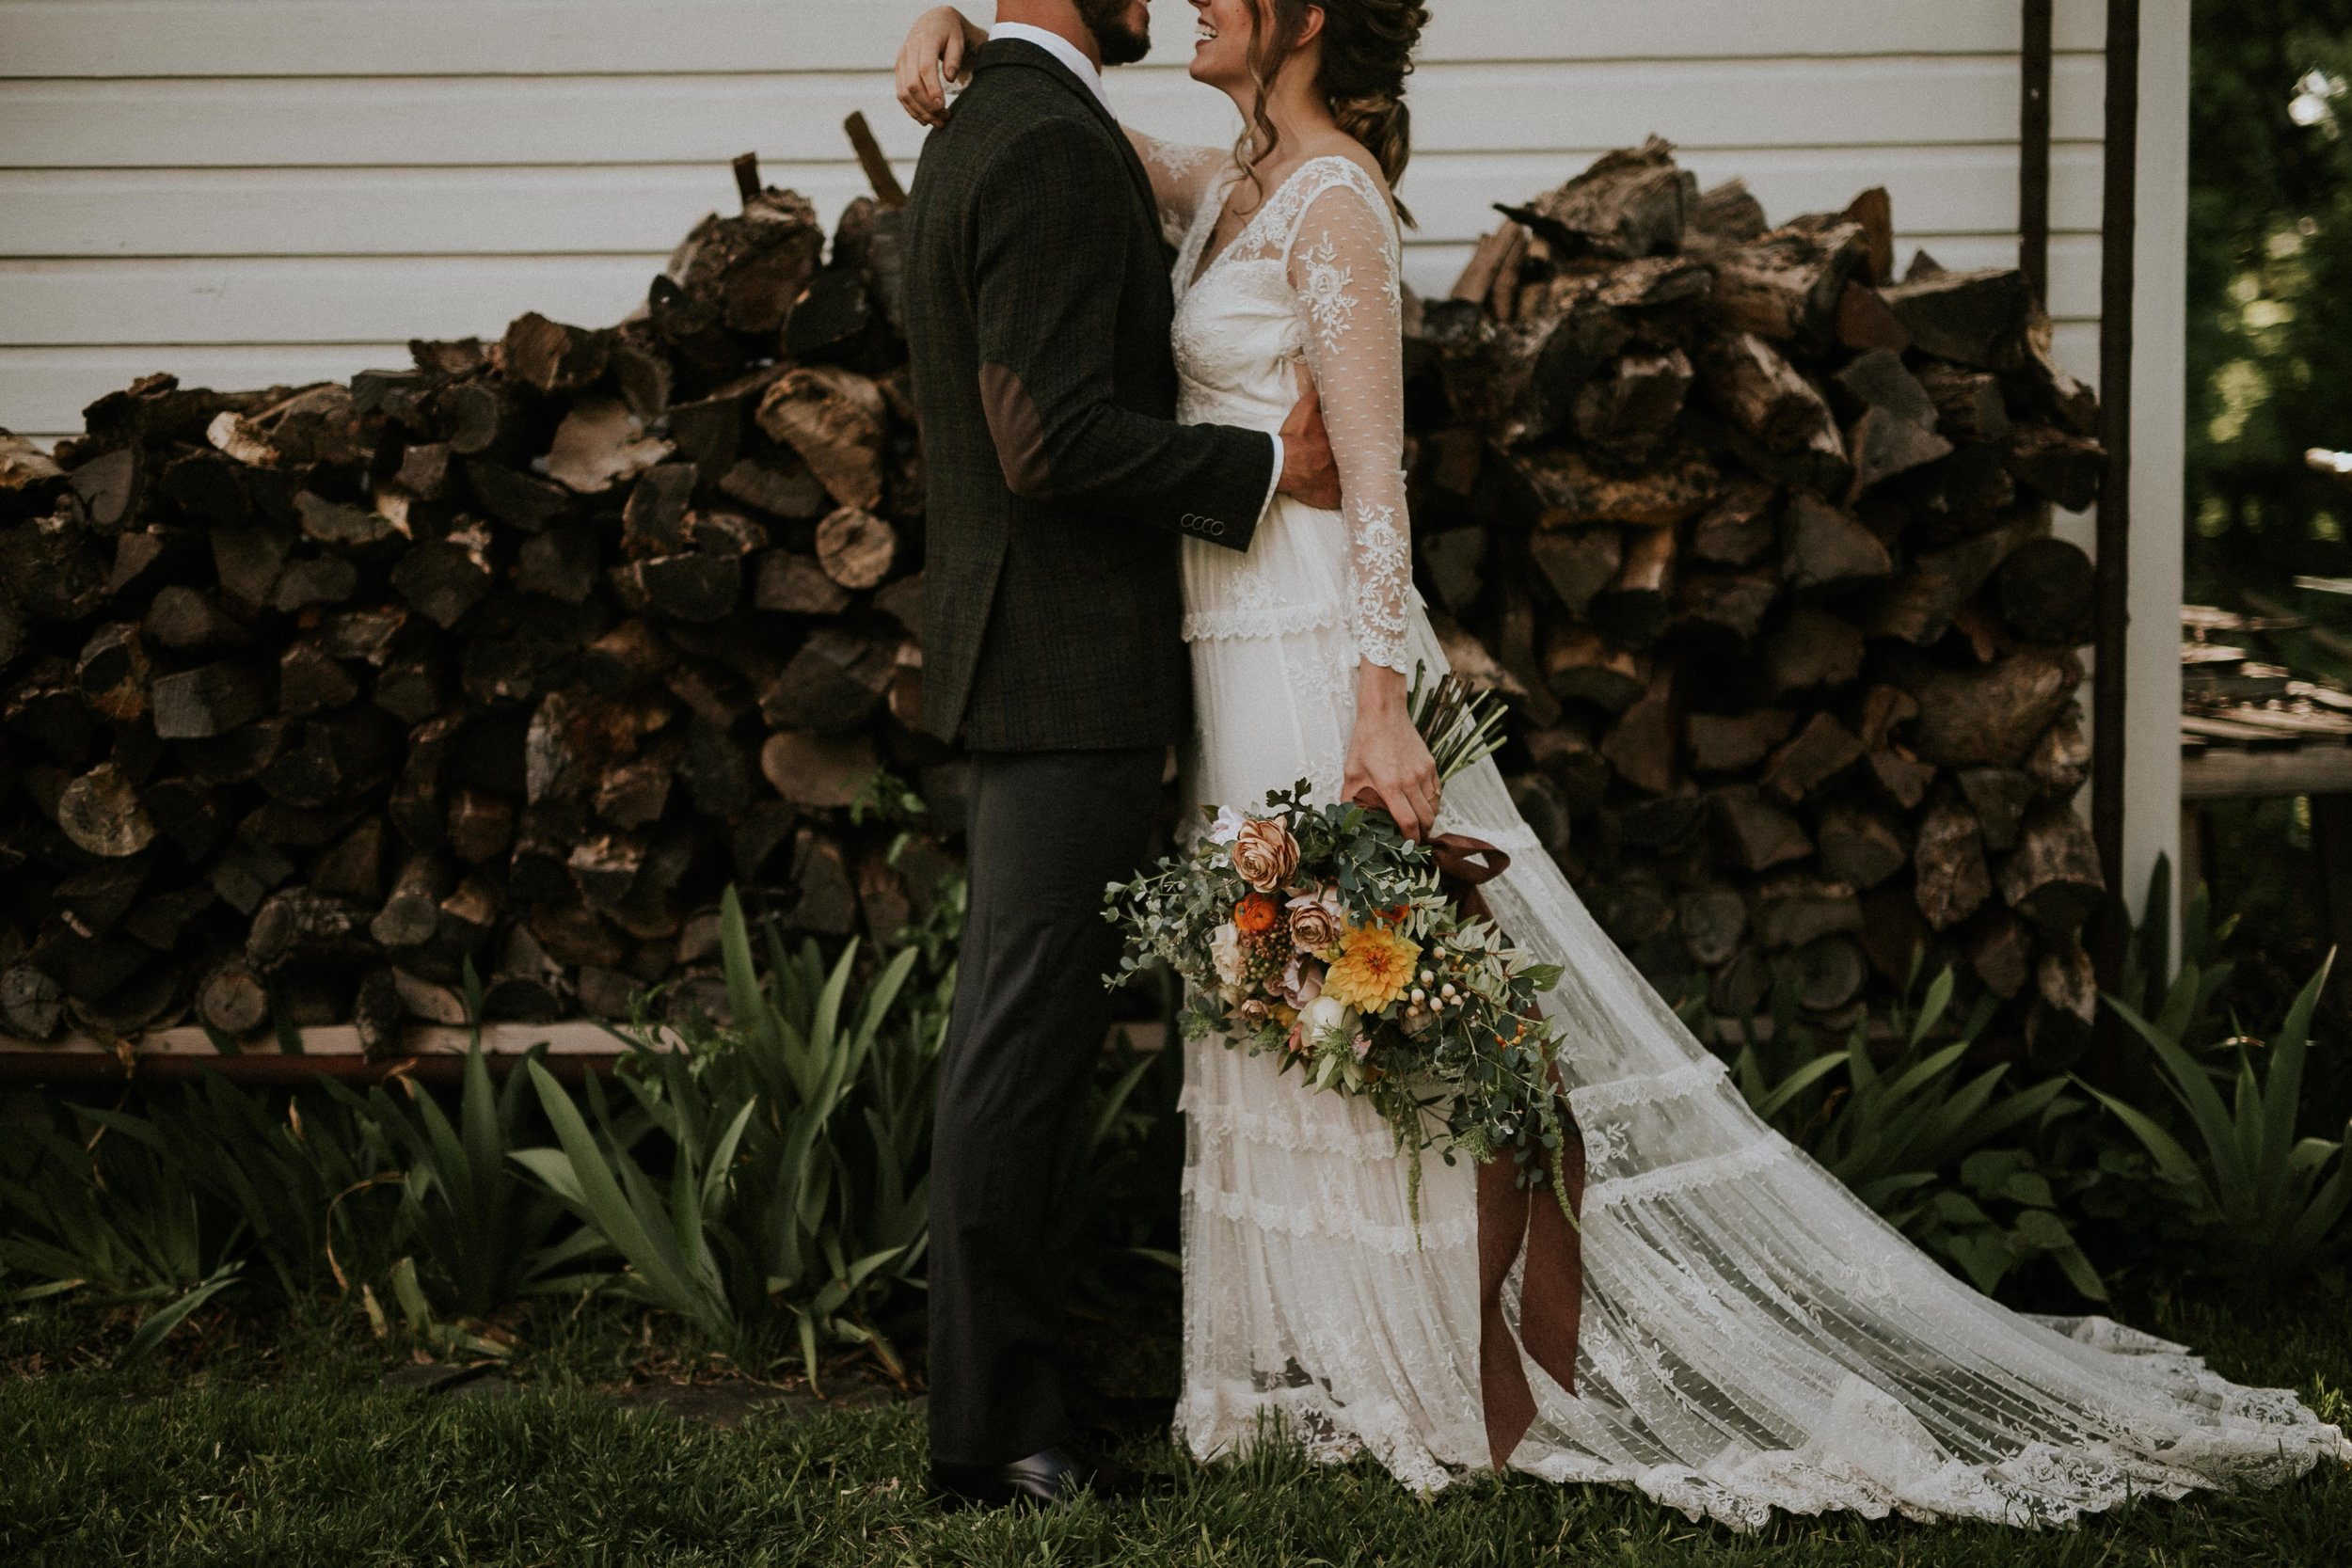 LAUREN MARIE PHOTO - Lauren Franco is DFW & Waco-based photographer who shoots with audacious and romantic couples for all the moody vibes.Wedding packages start at $1,900.